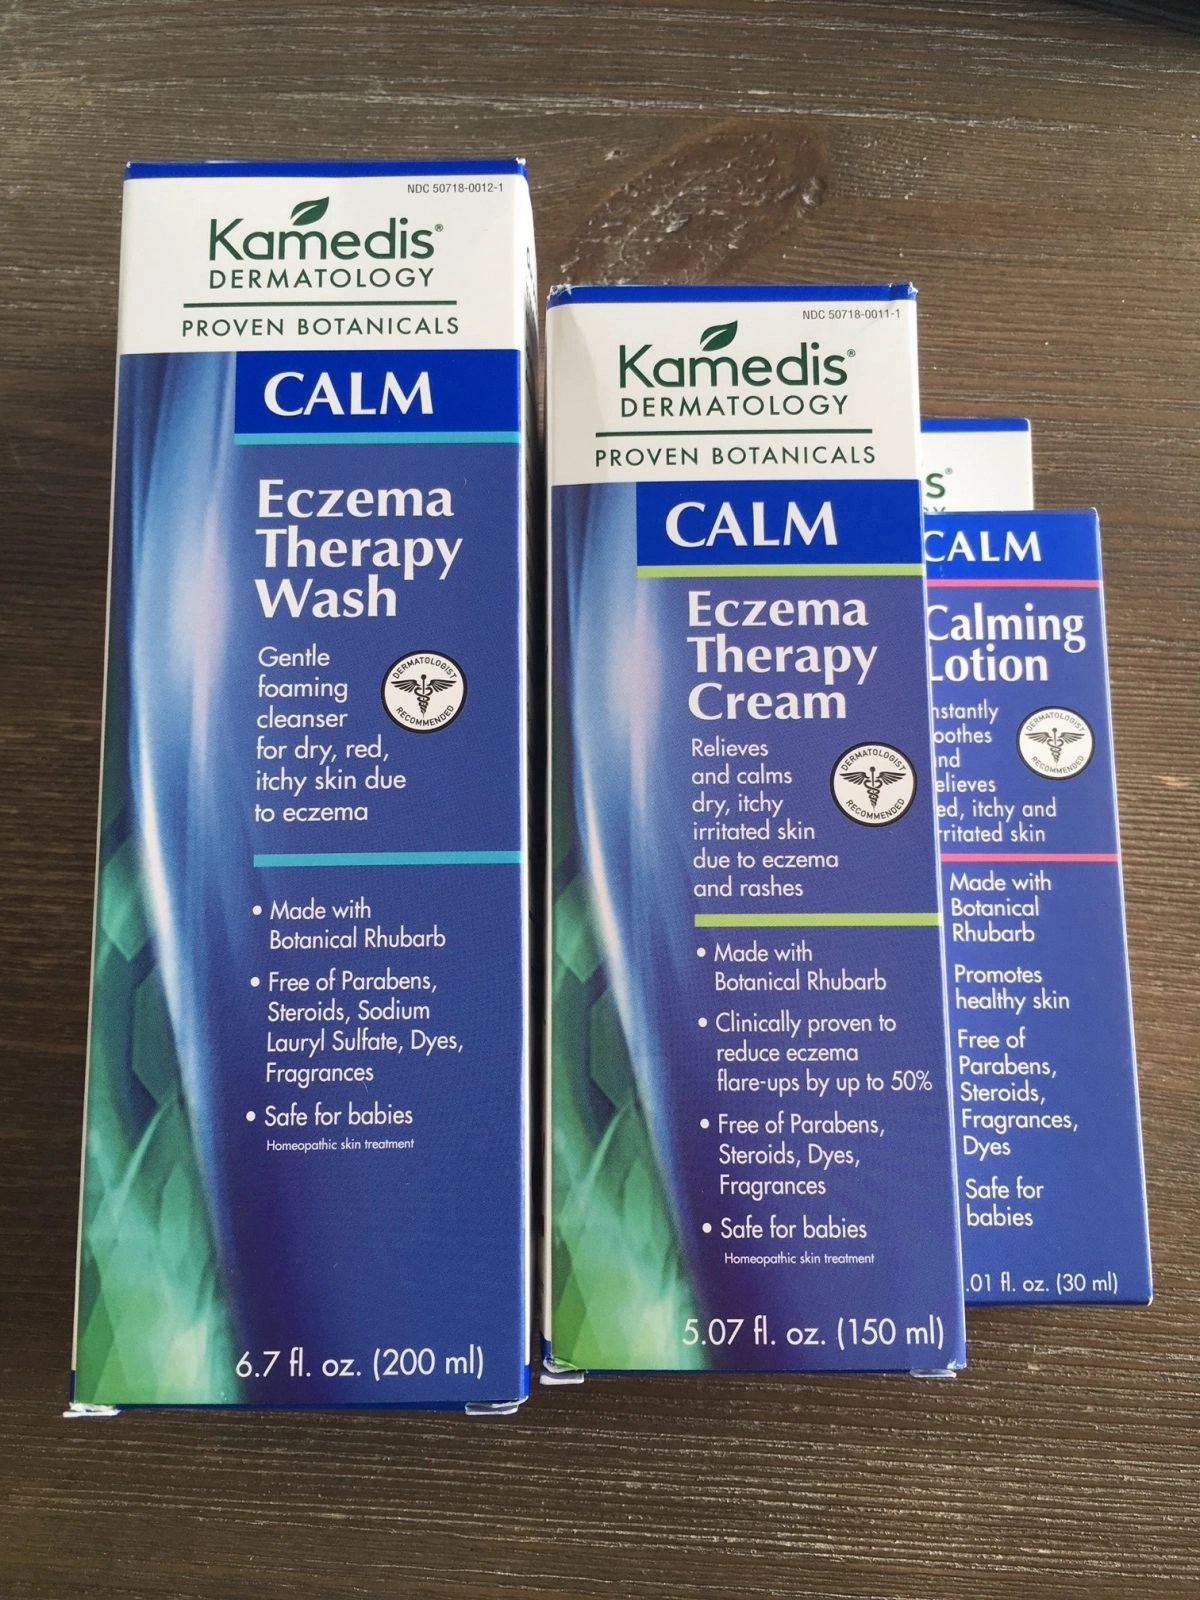 Kamedis Dermatology in Packaging